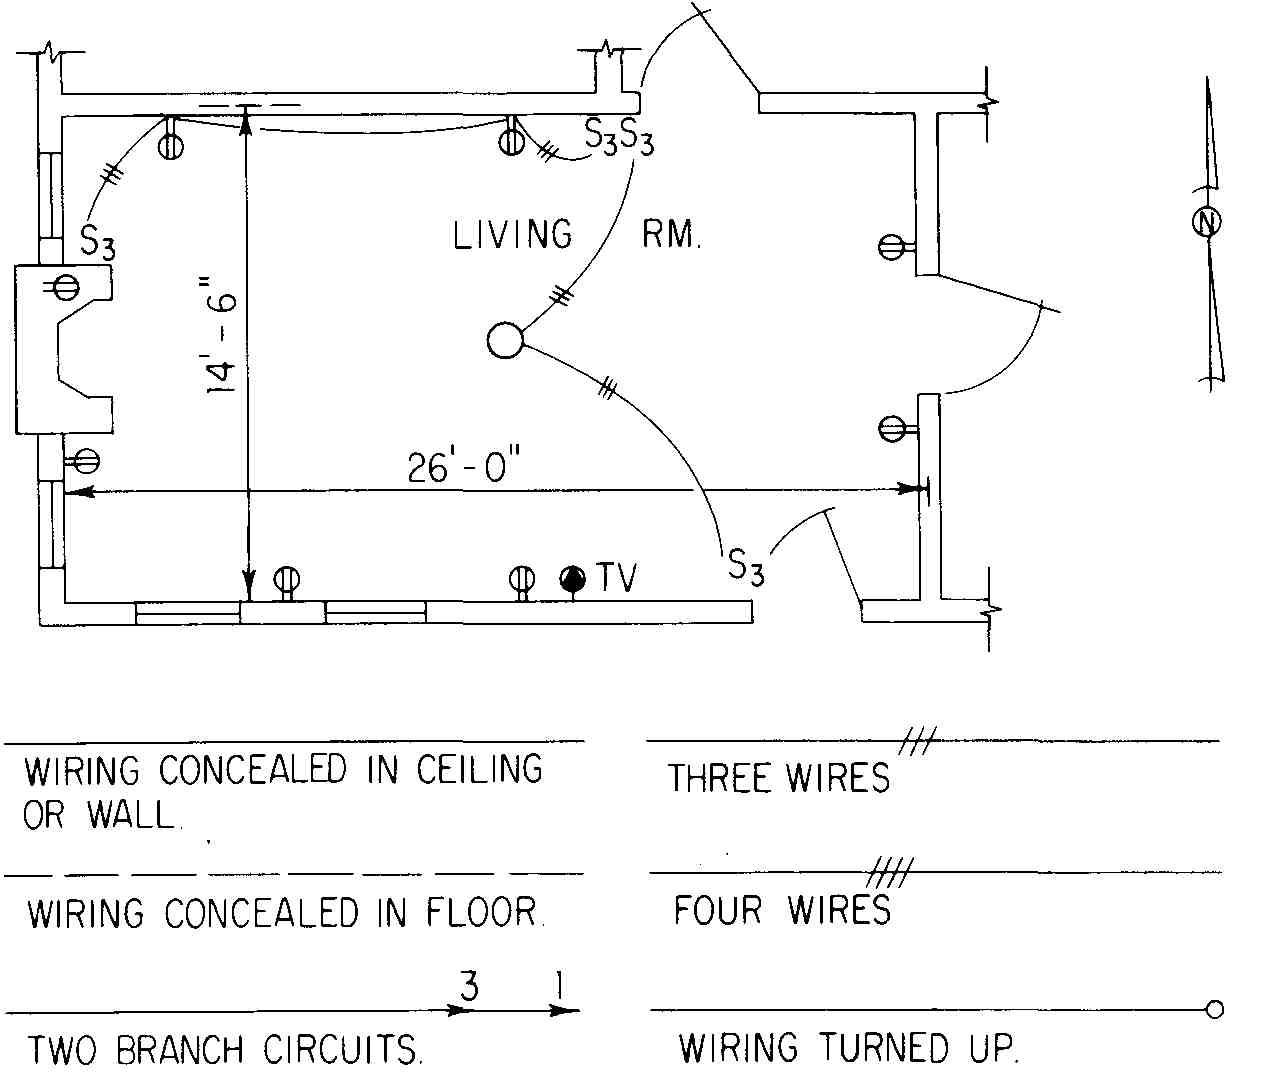 Electrical Service Panel Schematic Drawing For Architectural Plans